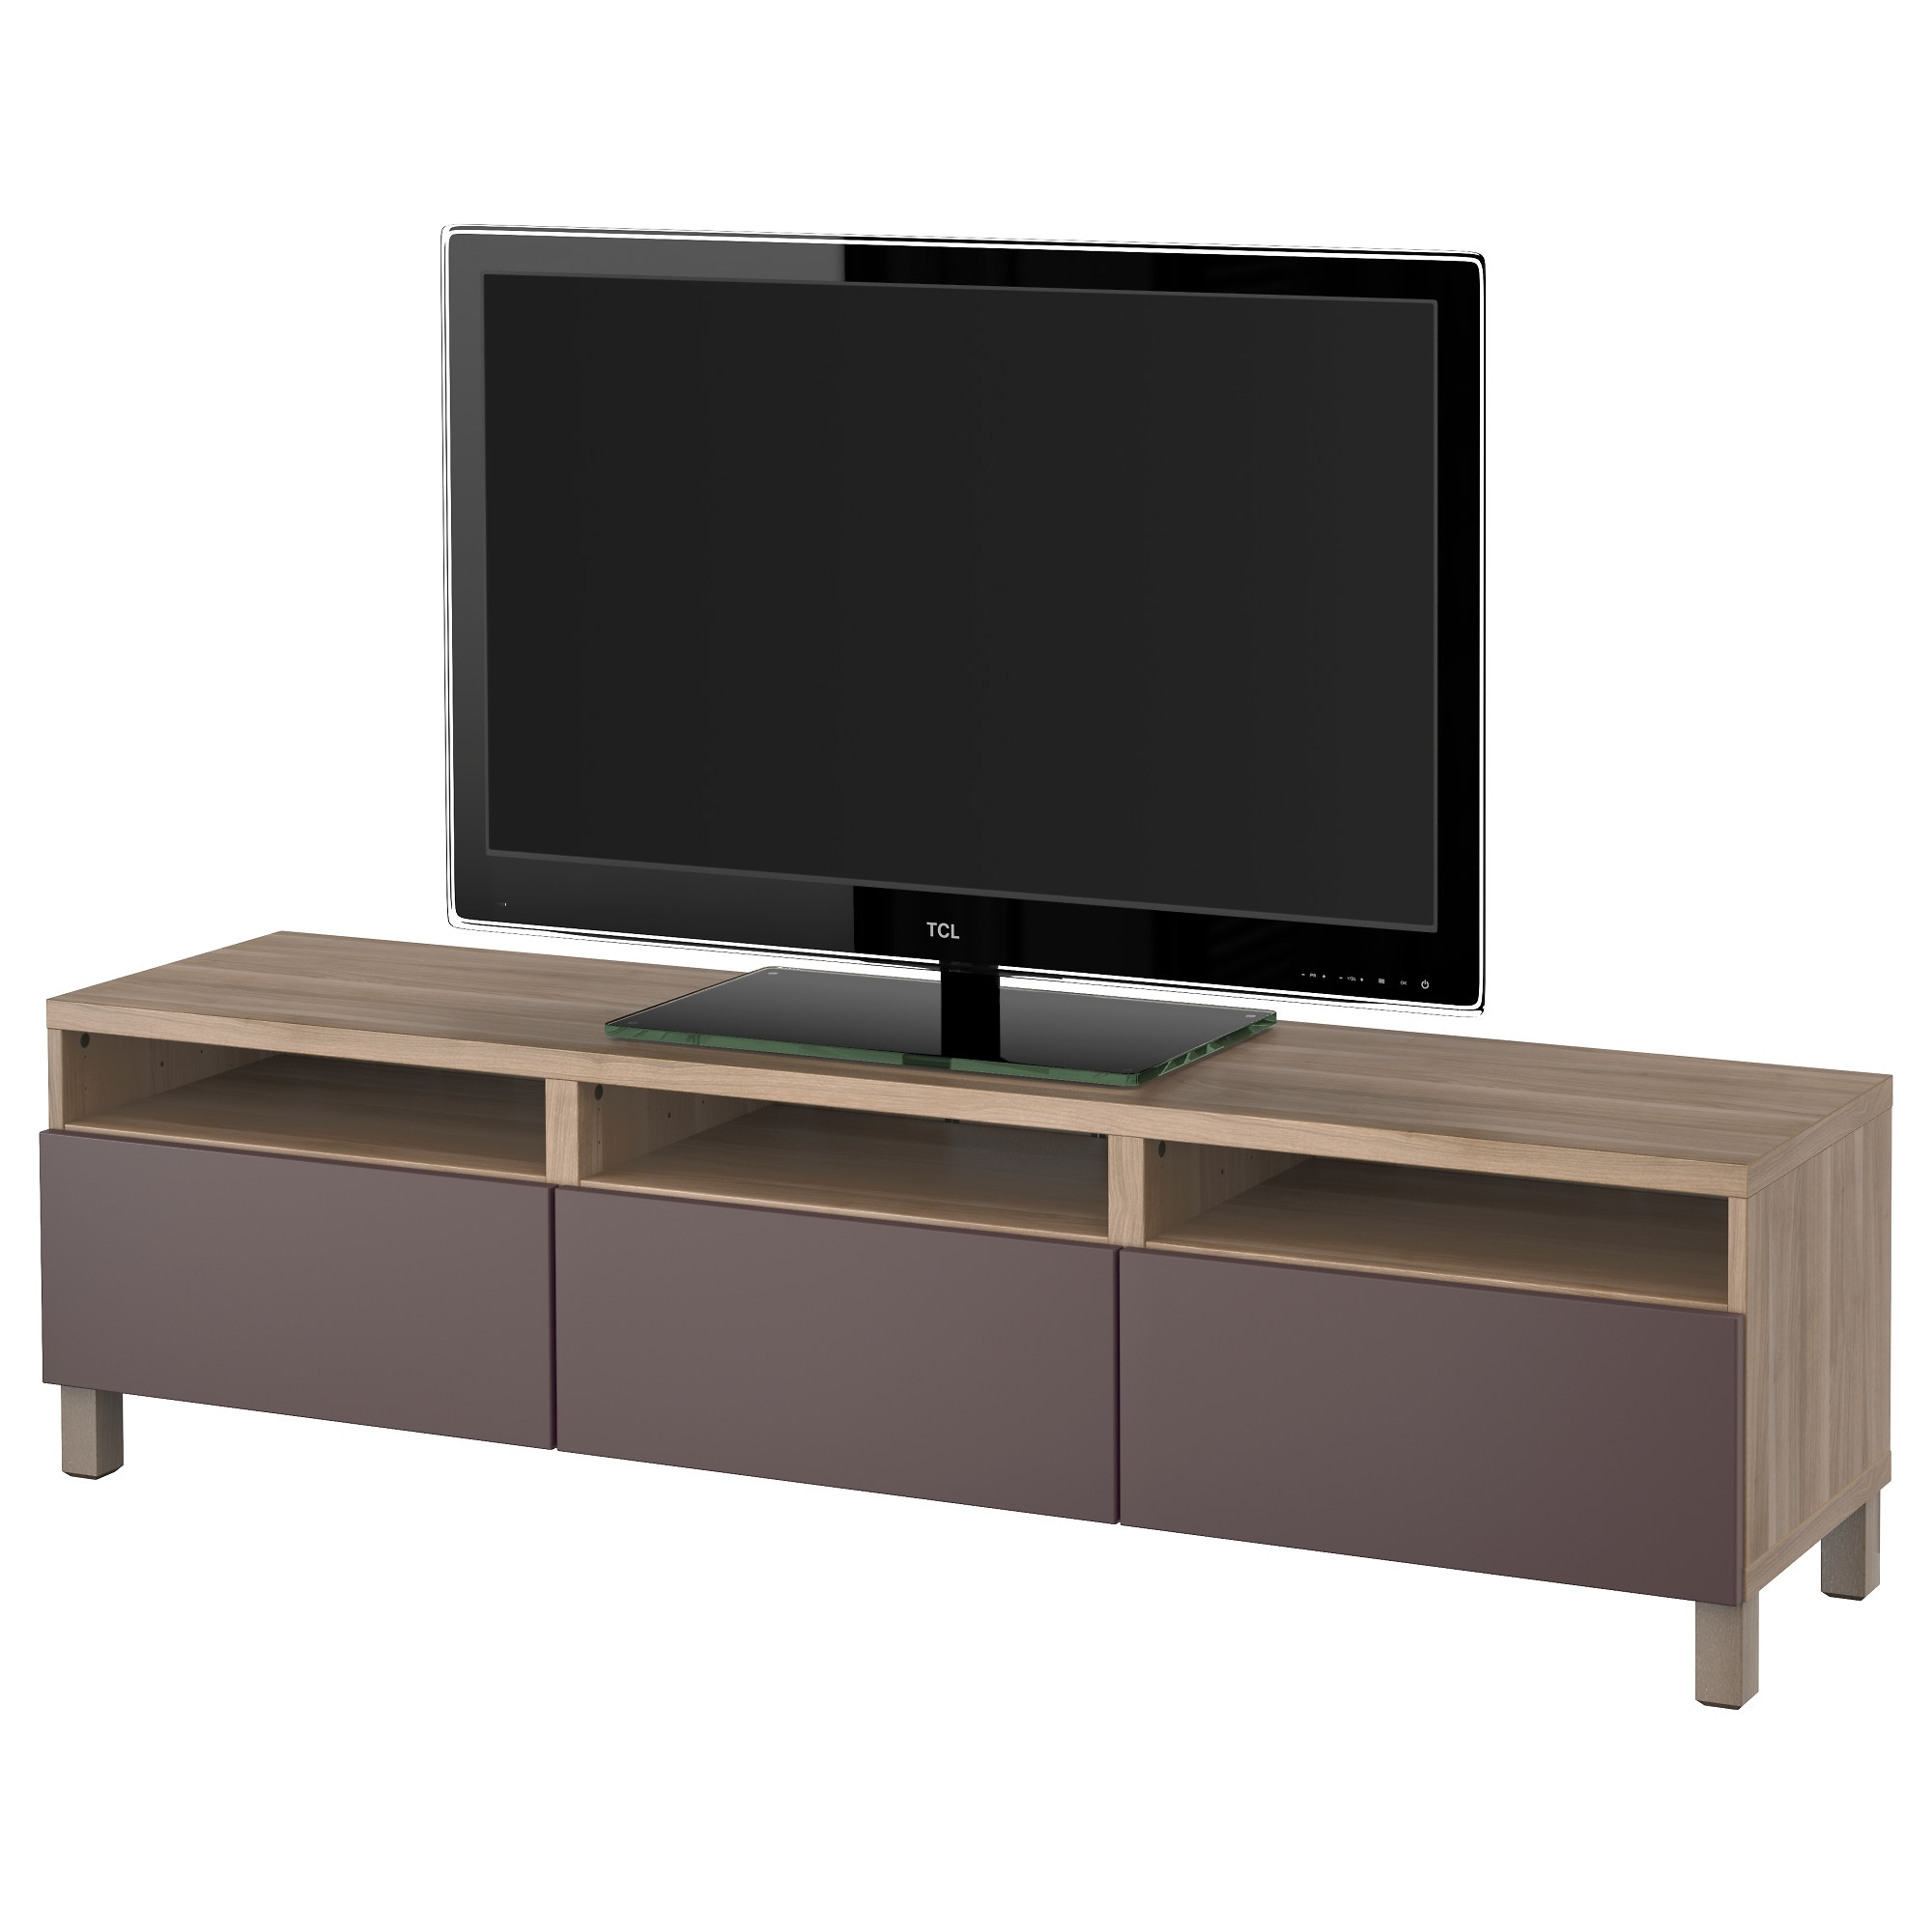 beste von ensemble meuble tv table basse id es de. Black Bedroom Furniture Sets. Home Design Ideas